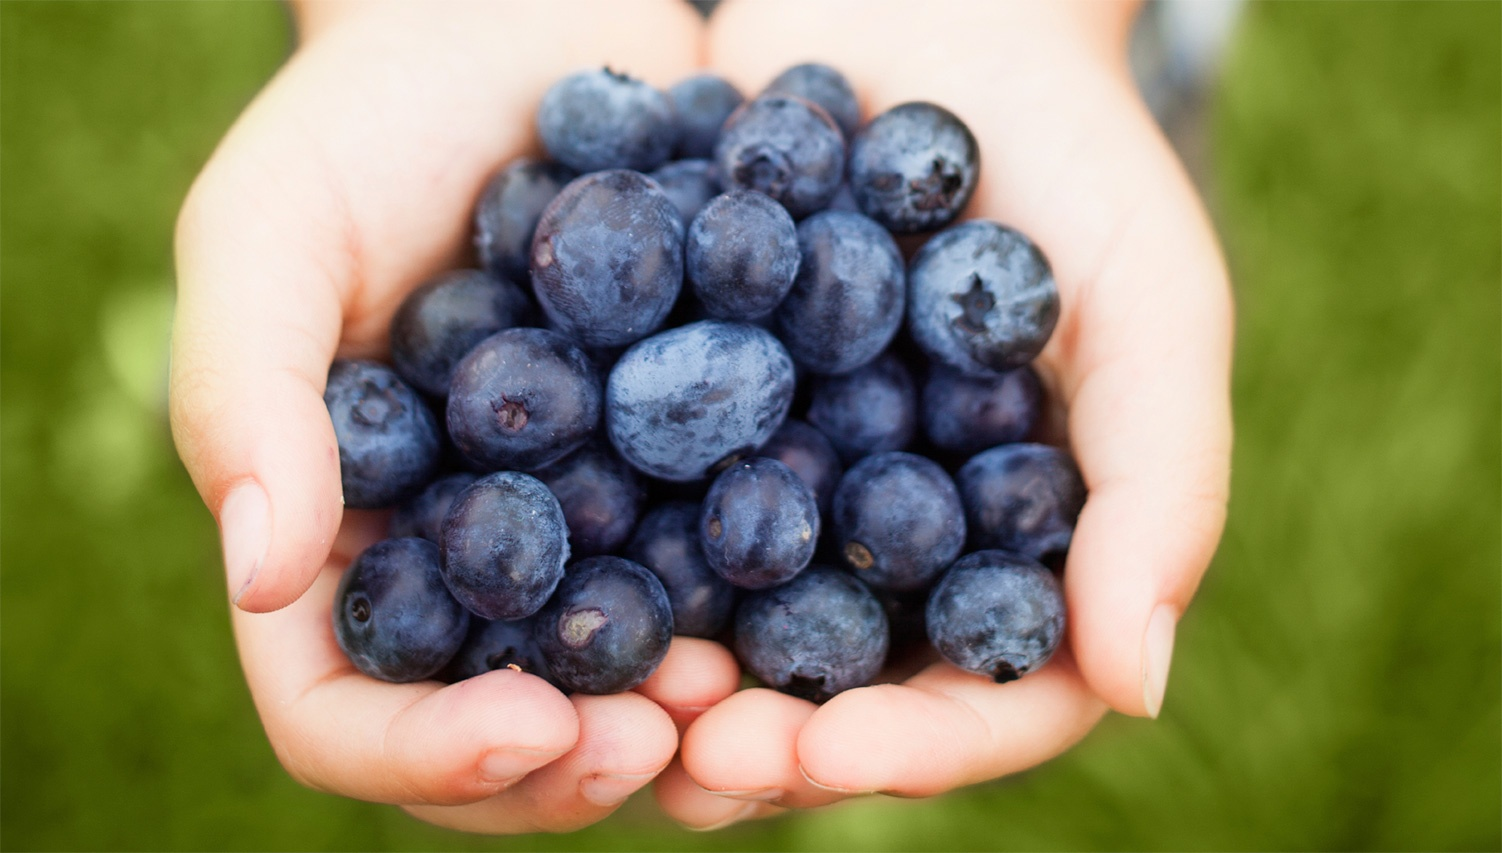 handful-of-blueberries-1502.jpg